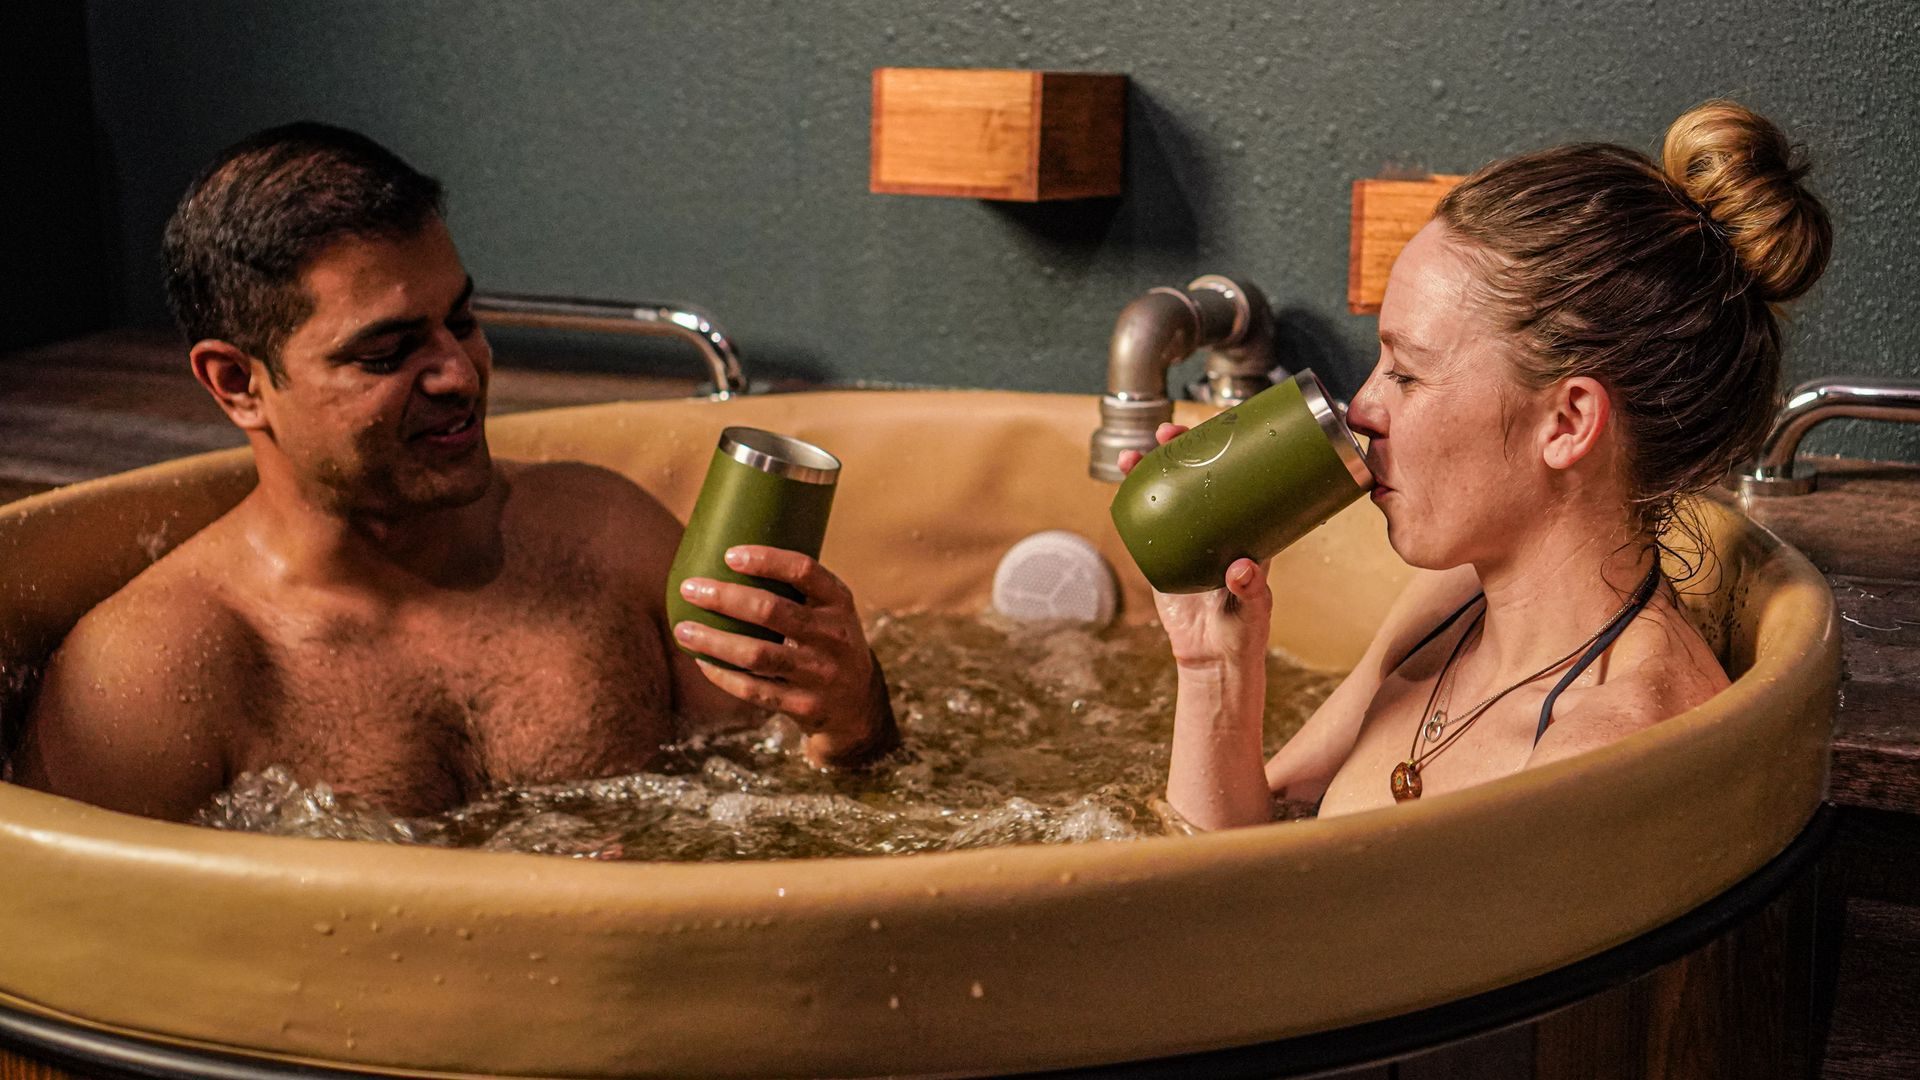 Picture of two people in a bath tub filled with water that smells similar to beer